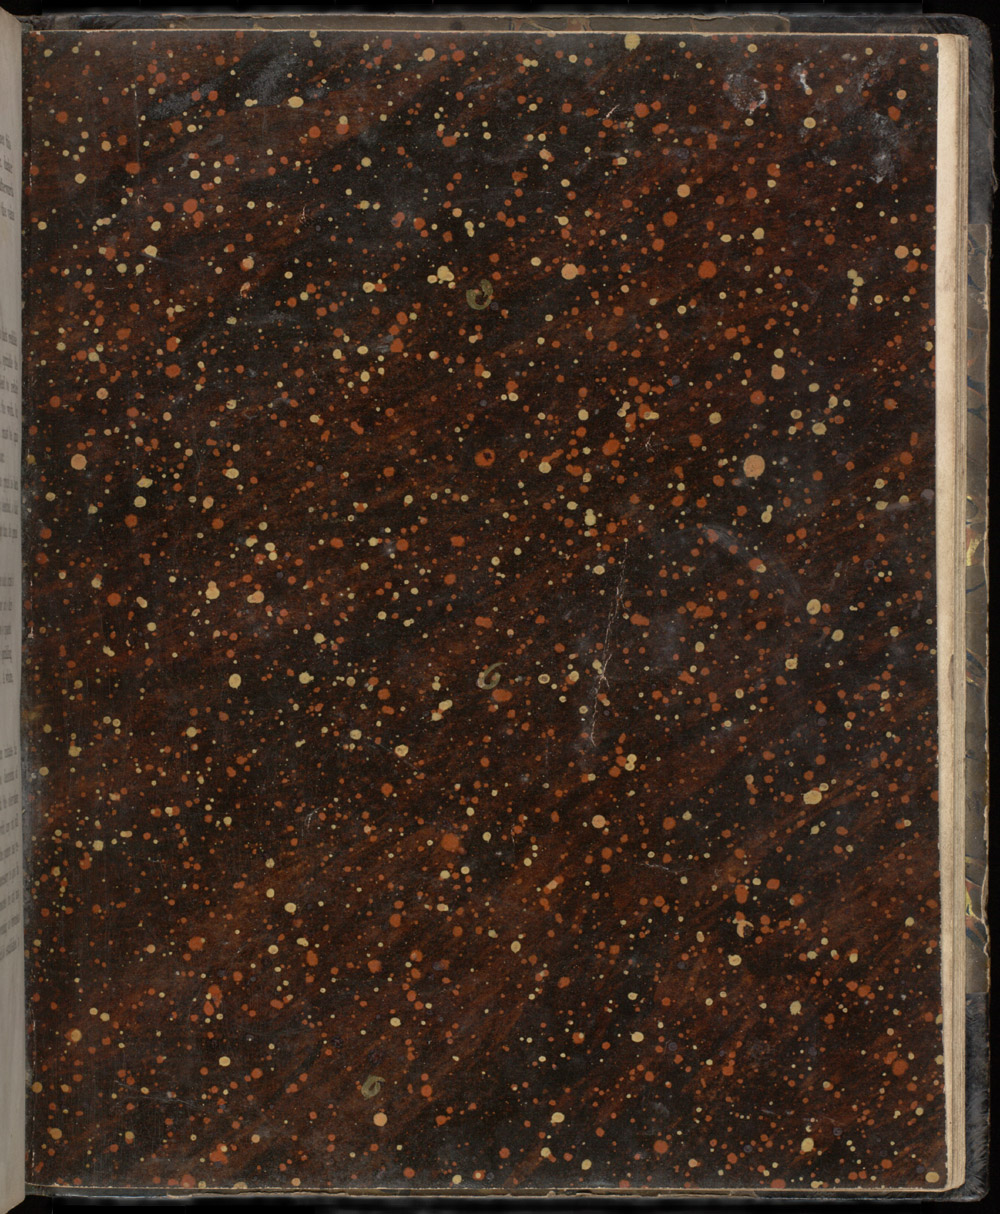 Red porphyry,  Image number:SIL12-1-243a